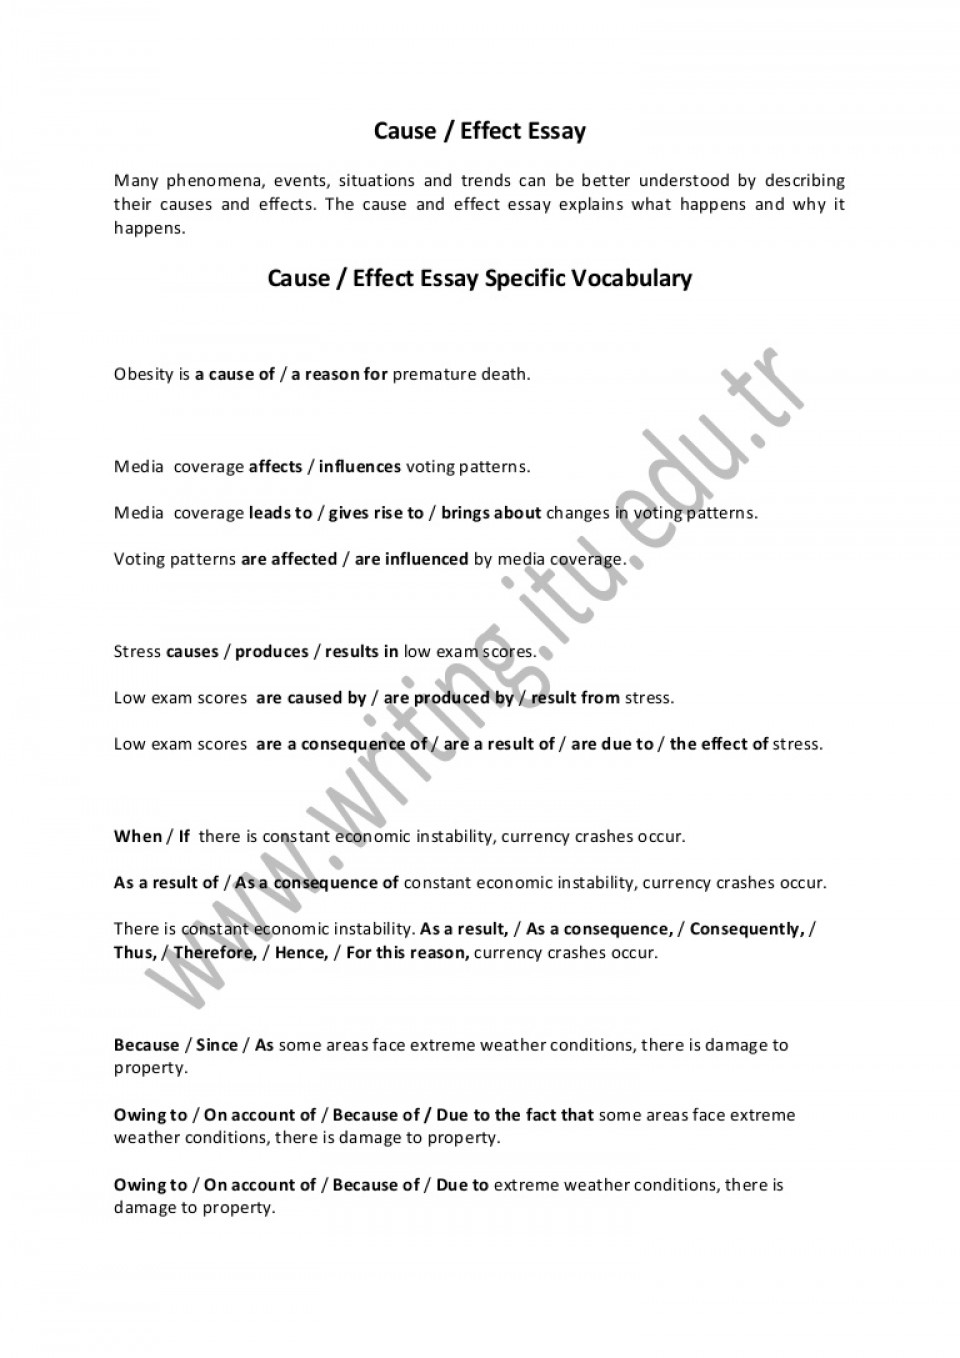 011 Essay Example Cause And Effect Causeandeffectessay Thumbnail Dreaded Samples Pdf Template Free 960